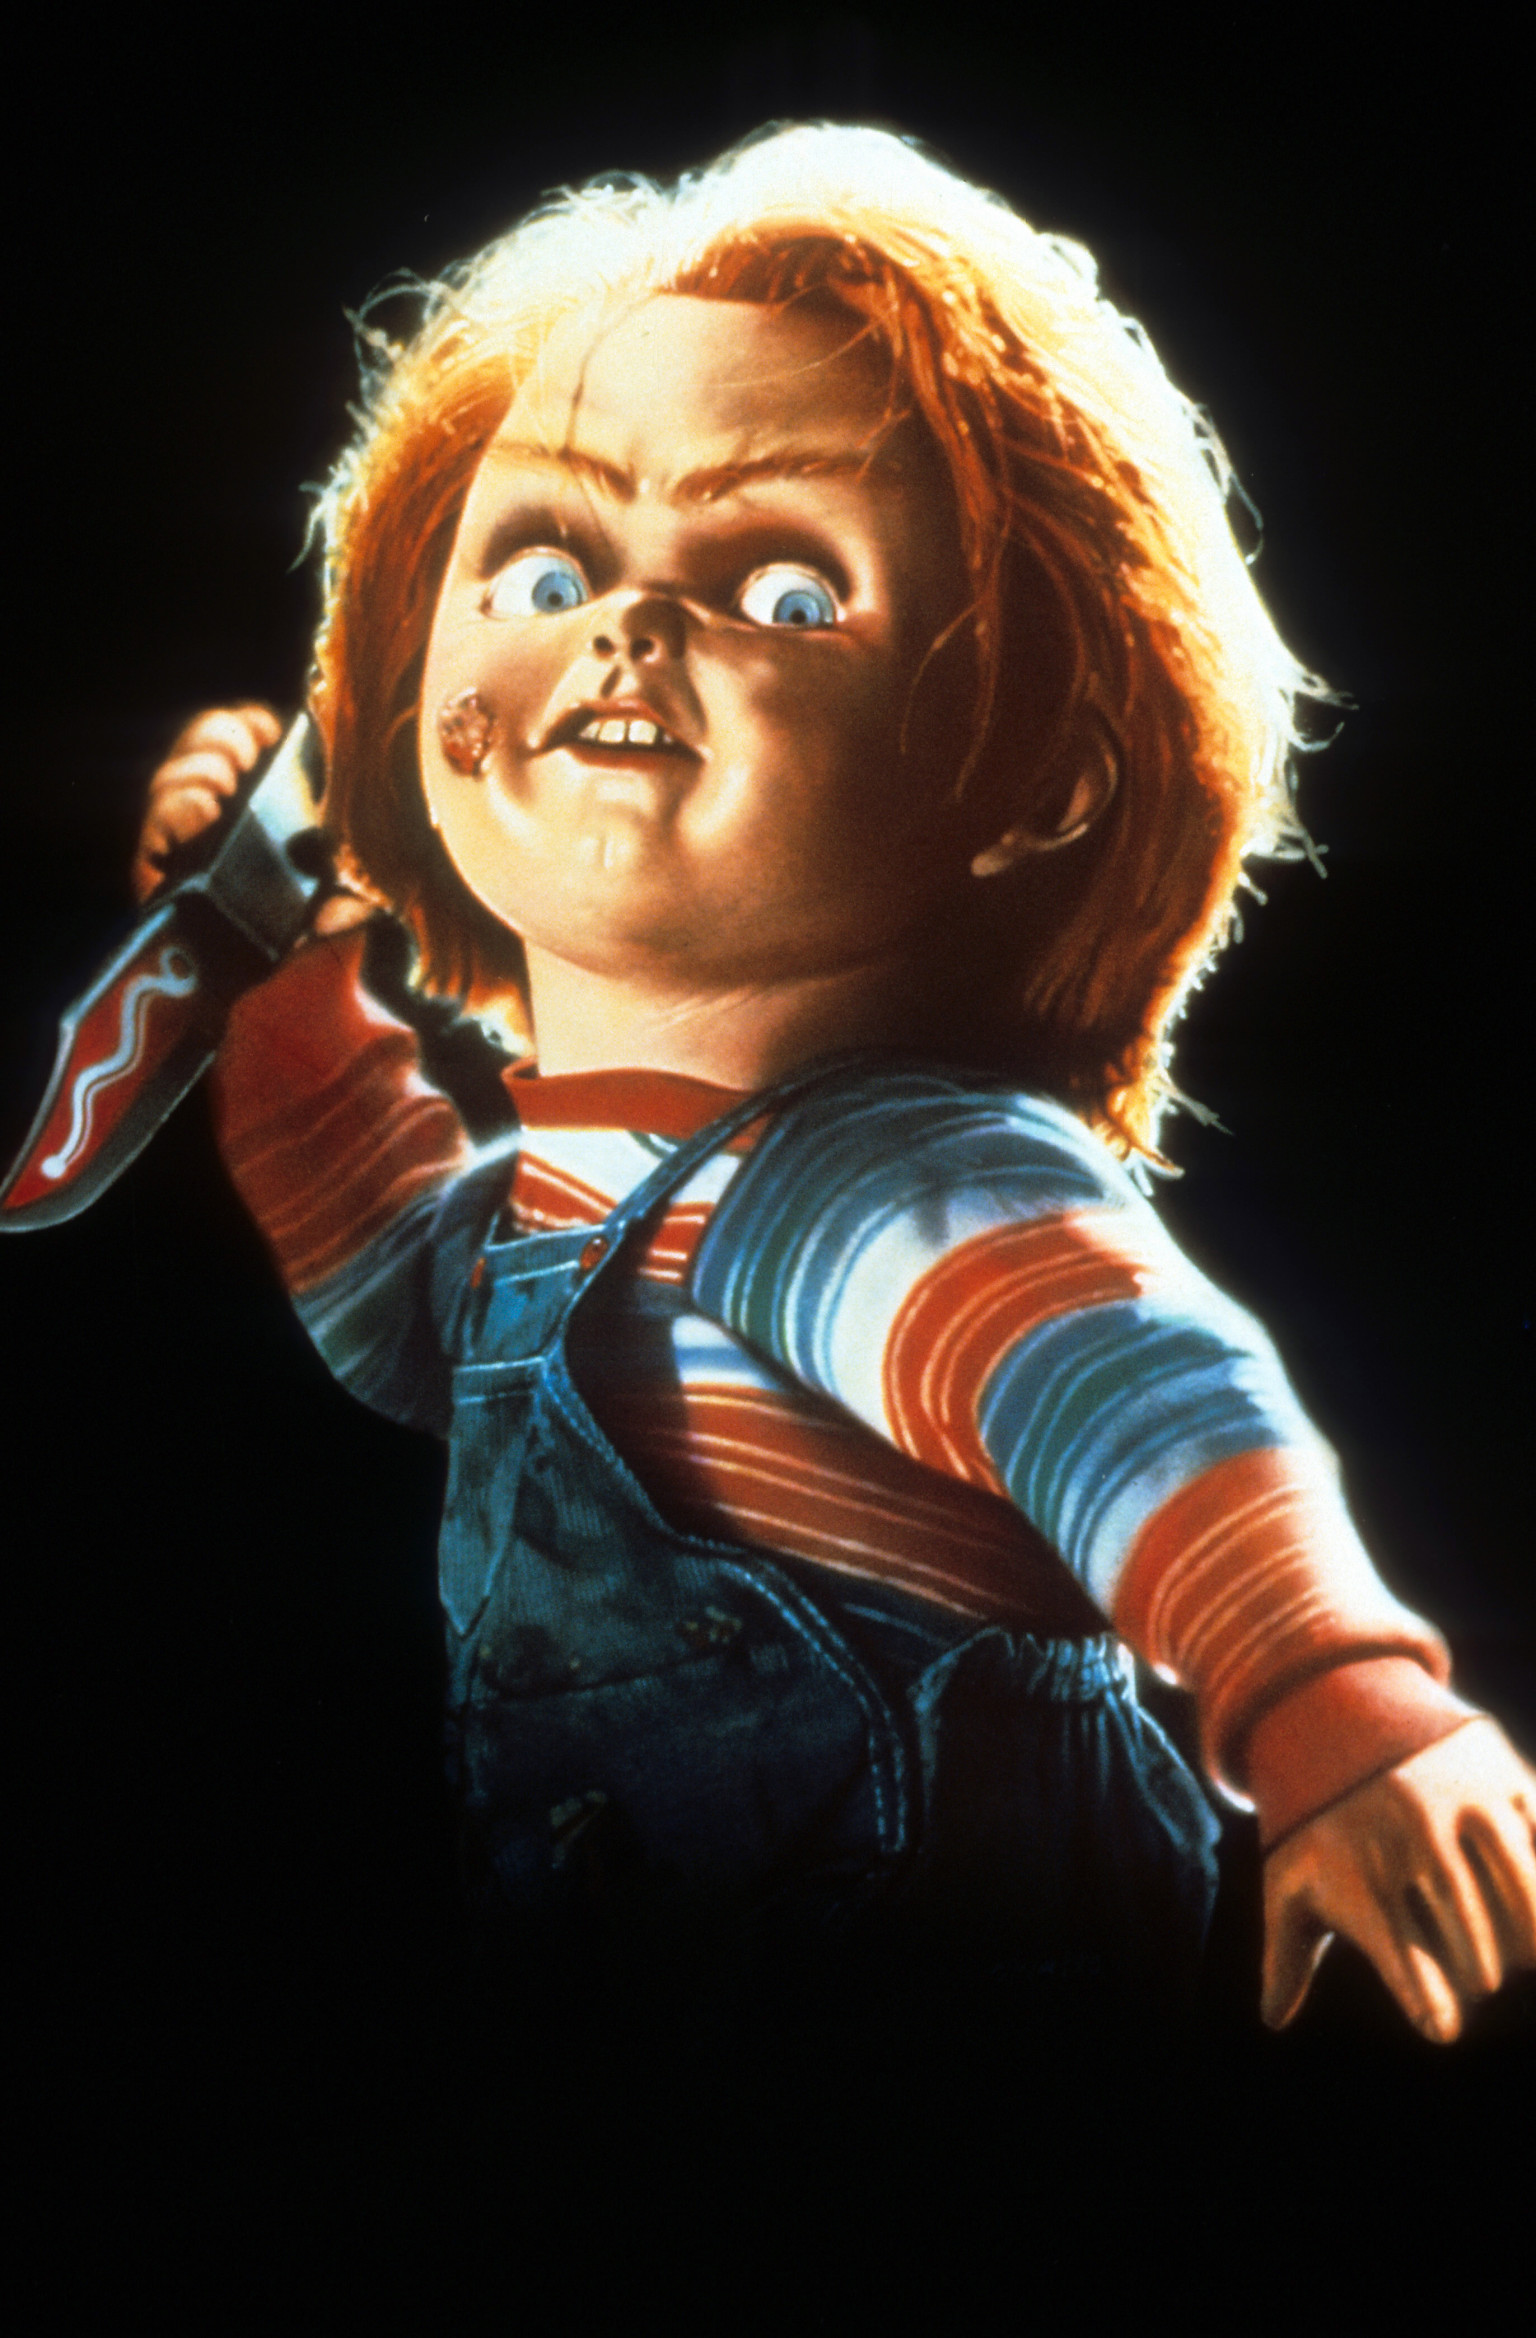 'Curse Of Chucky' Trailer: Sixth Entry In 'Child's Play